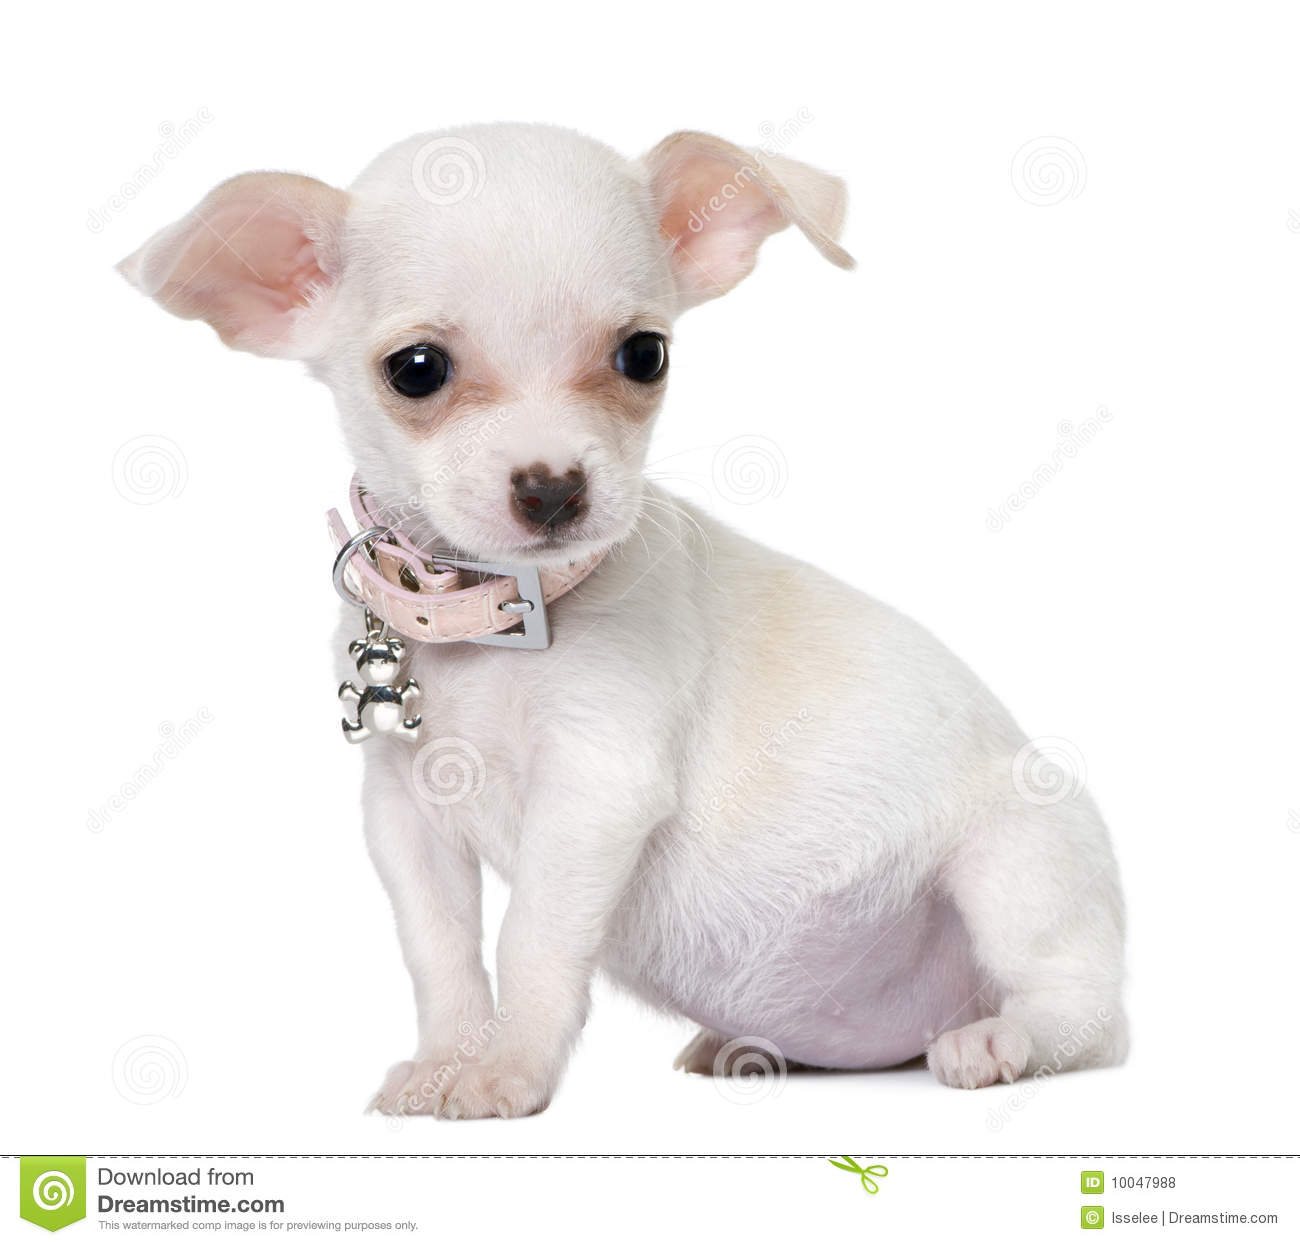 Bettwäsche Dog Side Cute Chihuahua Puppy 3 Months Old Stock Photo Image